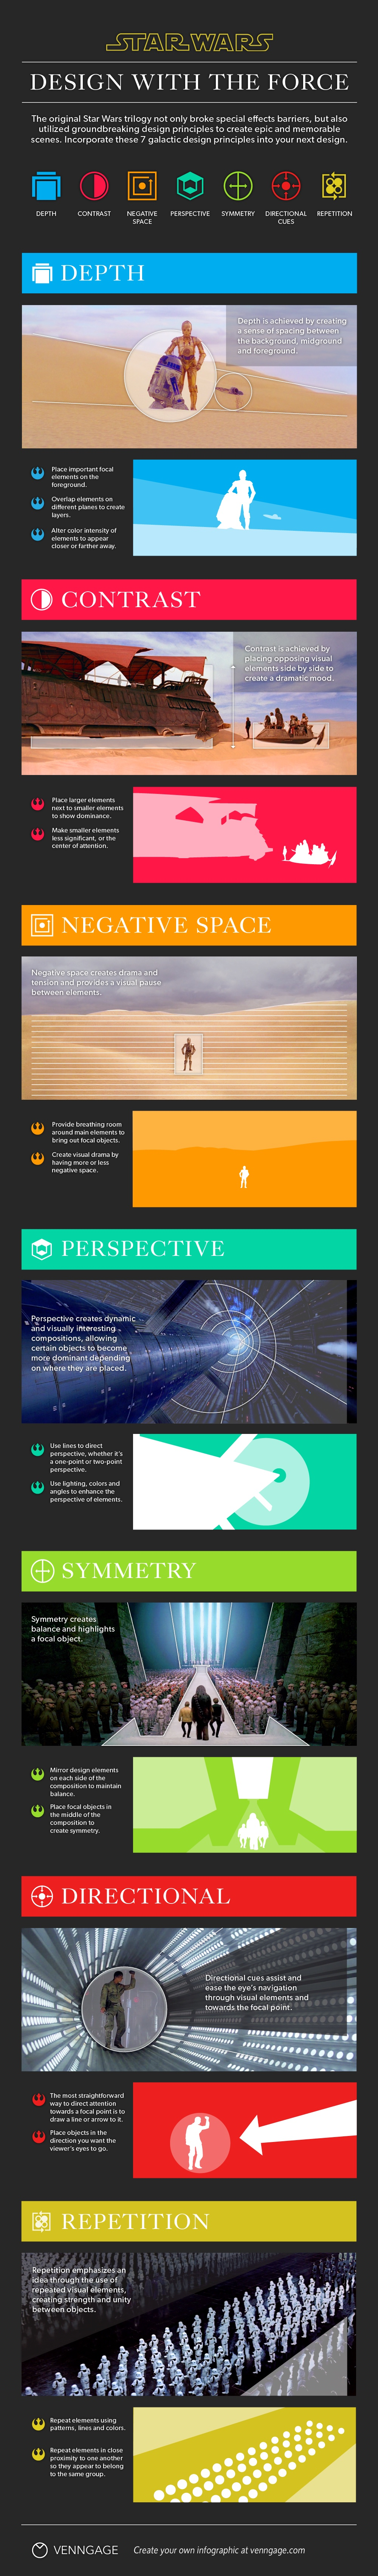 infographic design principles